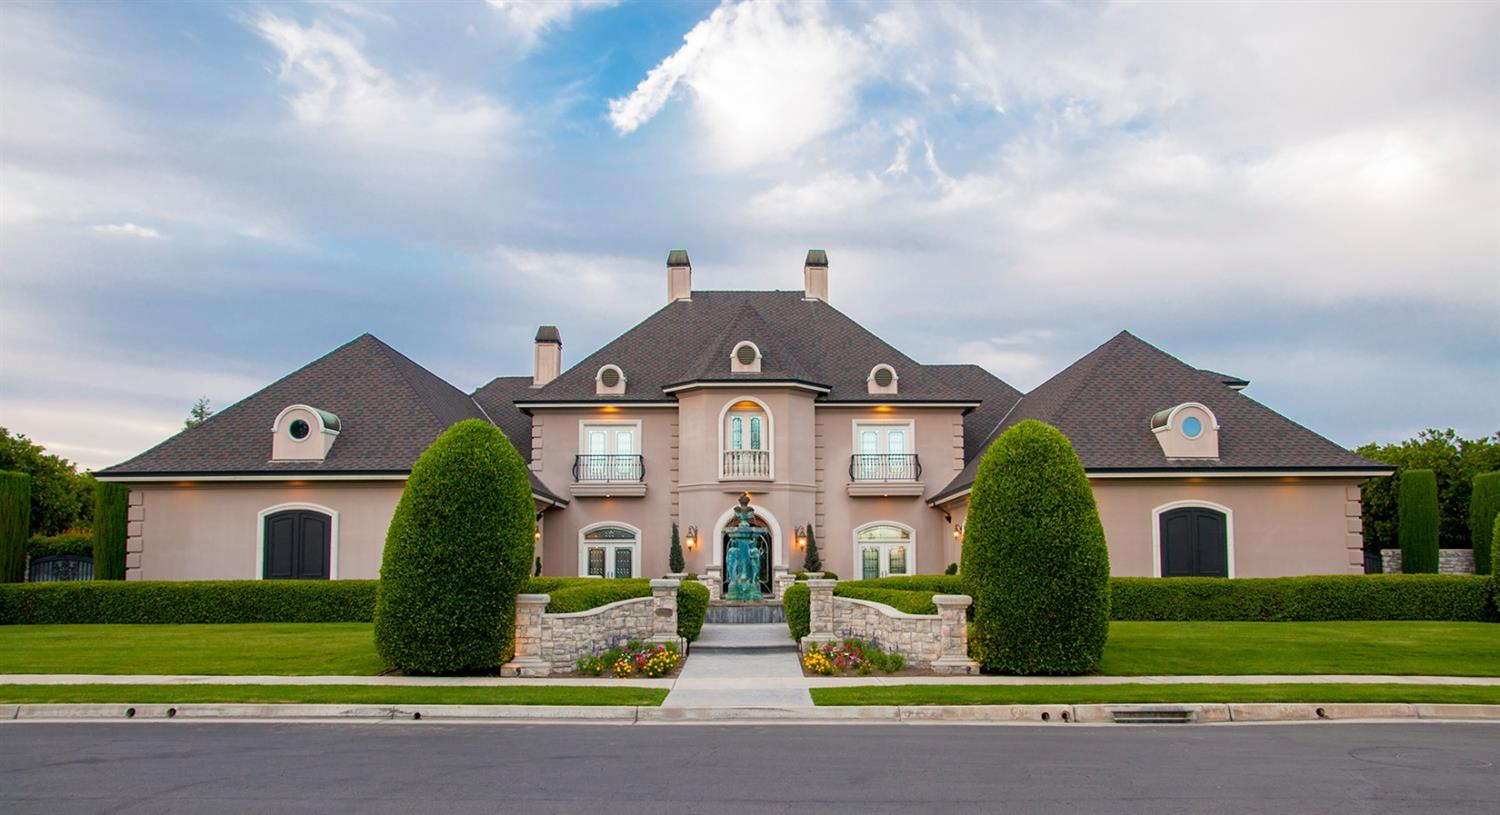 Premier Custom Home located within the privacy of La Vina Gated Community. Entry has Leaded Glass Doors, Stone Fireplace Surround ,Mantel Stone Columns . Sports Game Room features 23-Foot-High Ceilings all Cherry Wood Walls w/ eight Built-In Display Cases, Cherry Wood Fireplace w/ Granite Surround, Leaded Glass French Doors also includes a Powder Room. Formal Dining Room, Custom Built Kitchen w/ Breakfast Nook, Theater Room w/ 8 Theater Chairs TV, Bar/Card Room, Library, Den, Exercise Room, Laundry Room, Master Bedroom/ Bath, Travertine Tile Flooring throughout entire house, Cherry Wood Cabinets & 6 Fireplaces. The front features a Gorgeous Fountain, Artificial Turf, Patio includes BBQ W/features, Fireplace /T.V., Surround Sound, Stamped Concrete, Custom Salt Water Pool, Outside Bathroom ,Gorgeous English Garden.  2 separate Garages w/Tile Flooring , large wall of Storage Cabinets, Exercise room upstairs Garage fully carpeted, Storage. See attached list for all amenities .